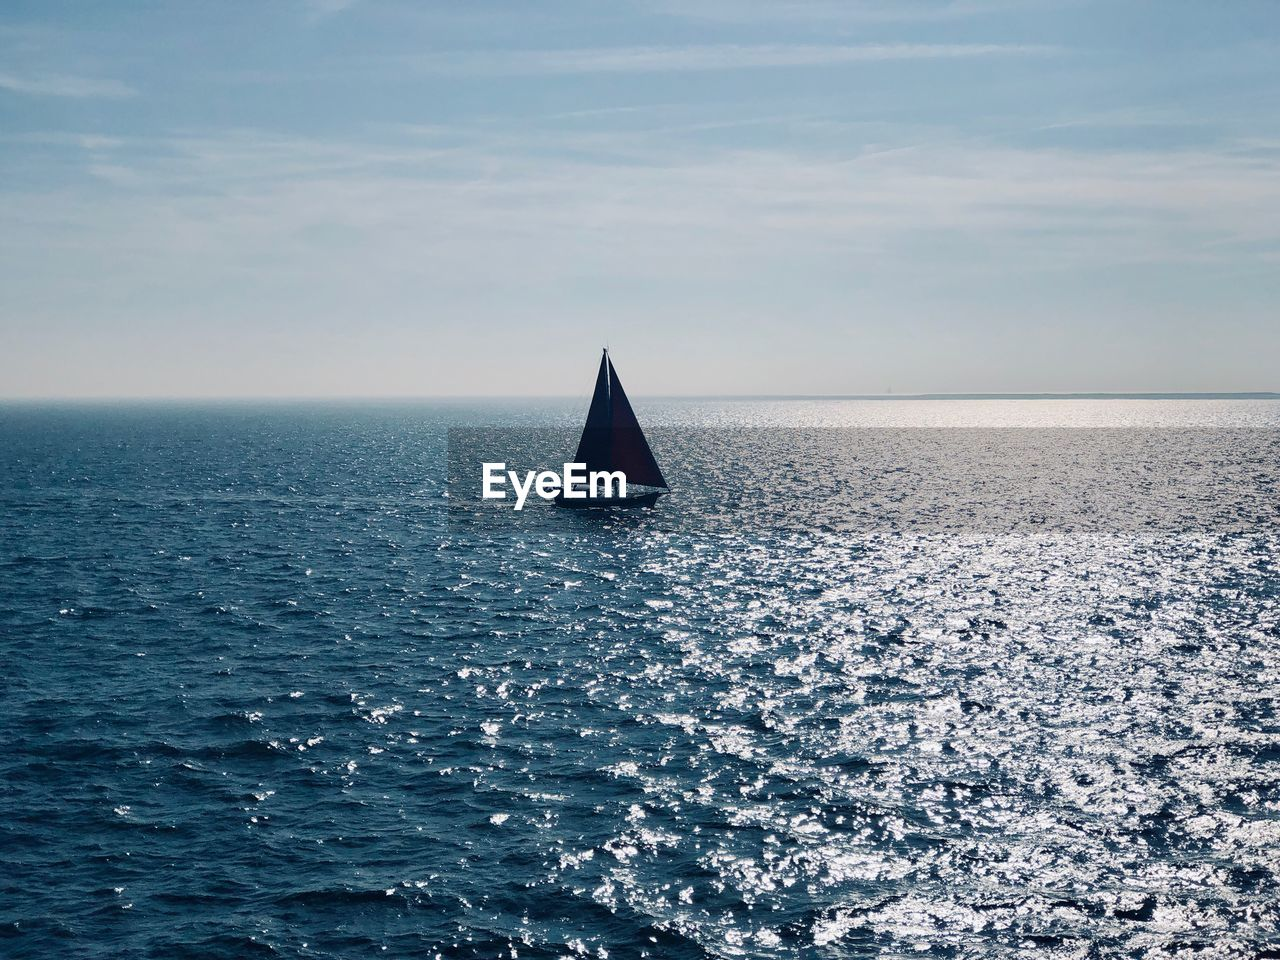 sea, water, horizon, horizon over water, sky, scenics - nature, nautical vessel, sailboat, waterfront, transportation, beauty in nature, sailing, nature, mode of transportation, tranquility, tranquil scene, no people, cloud - sky, day, outdoors